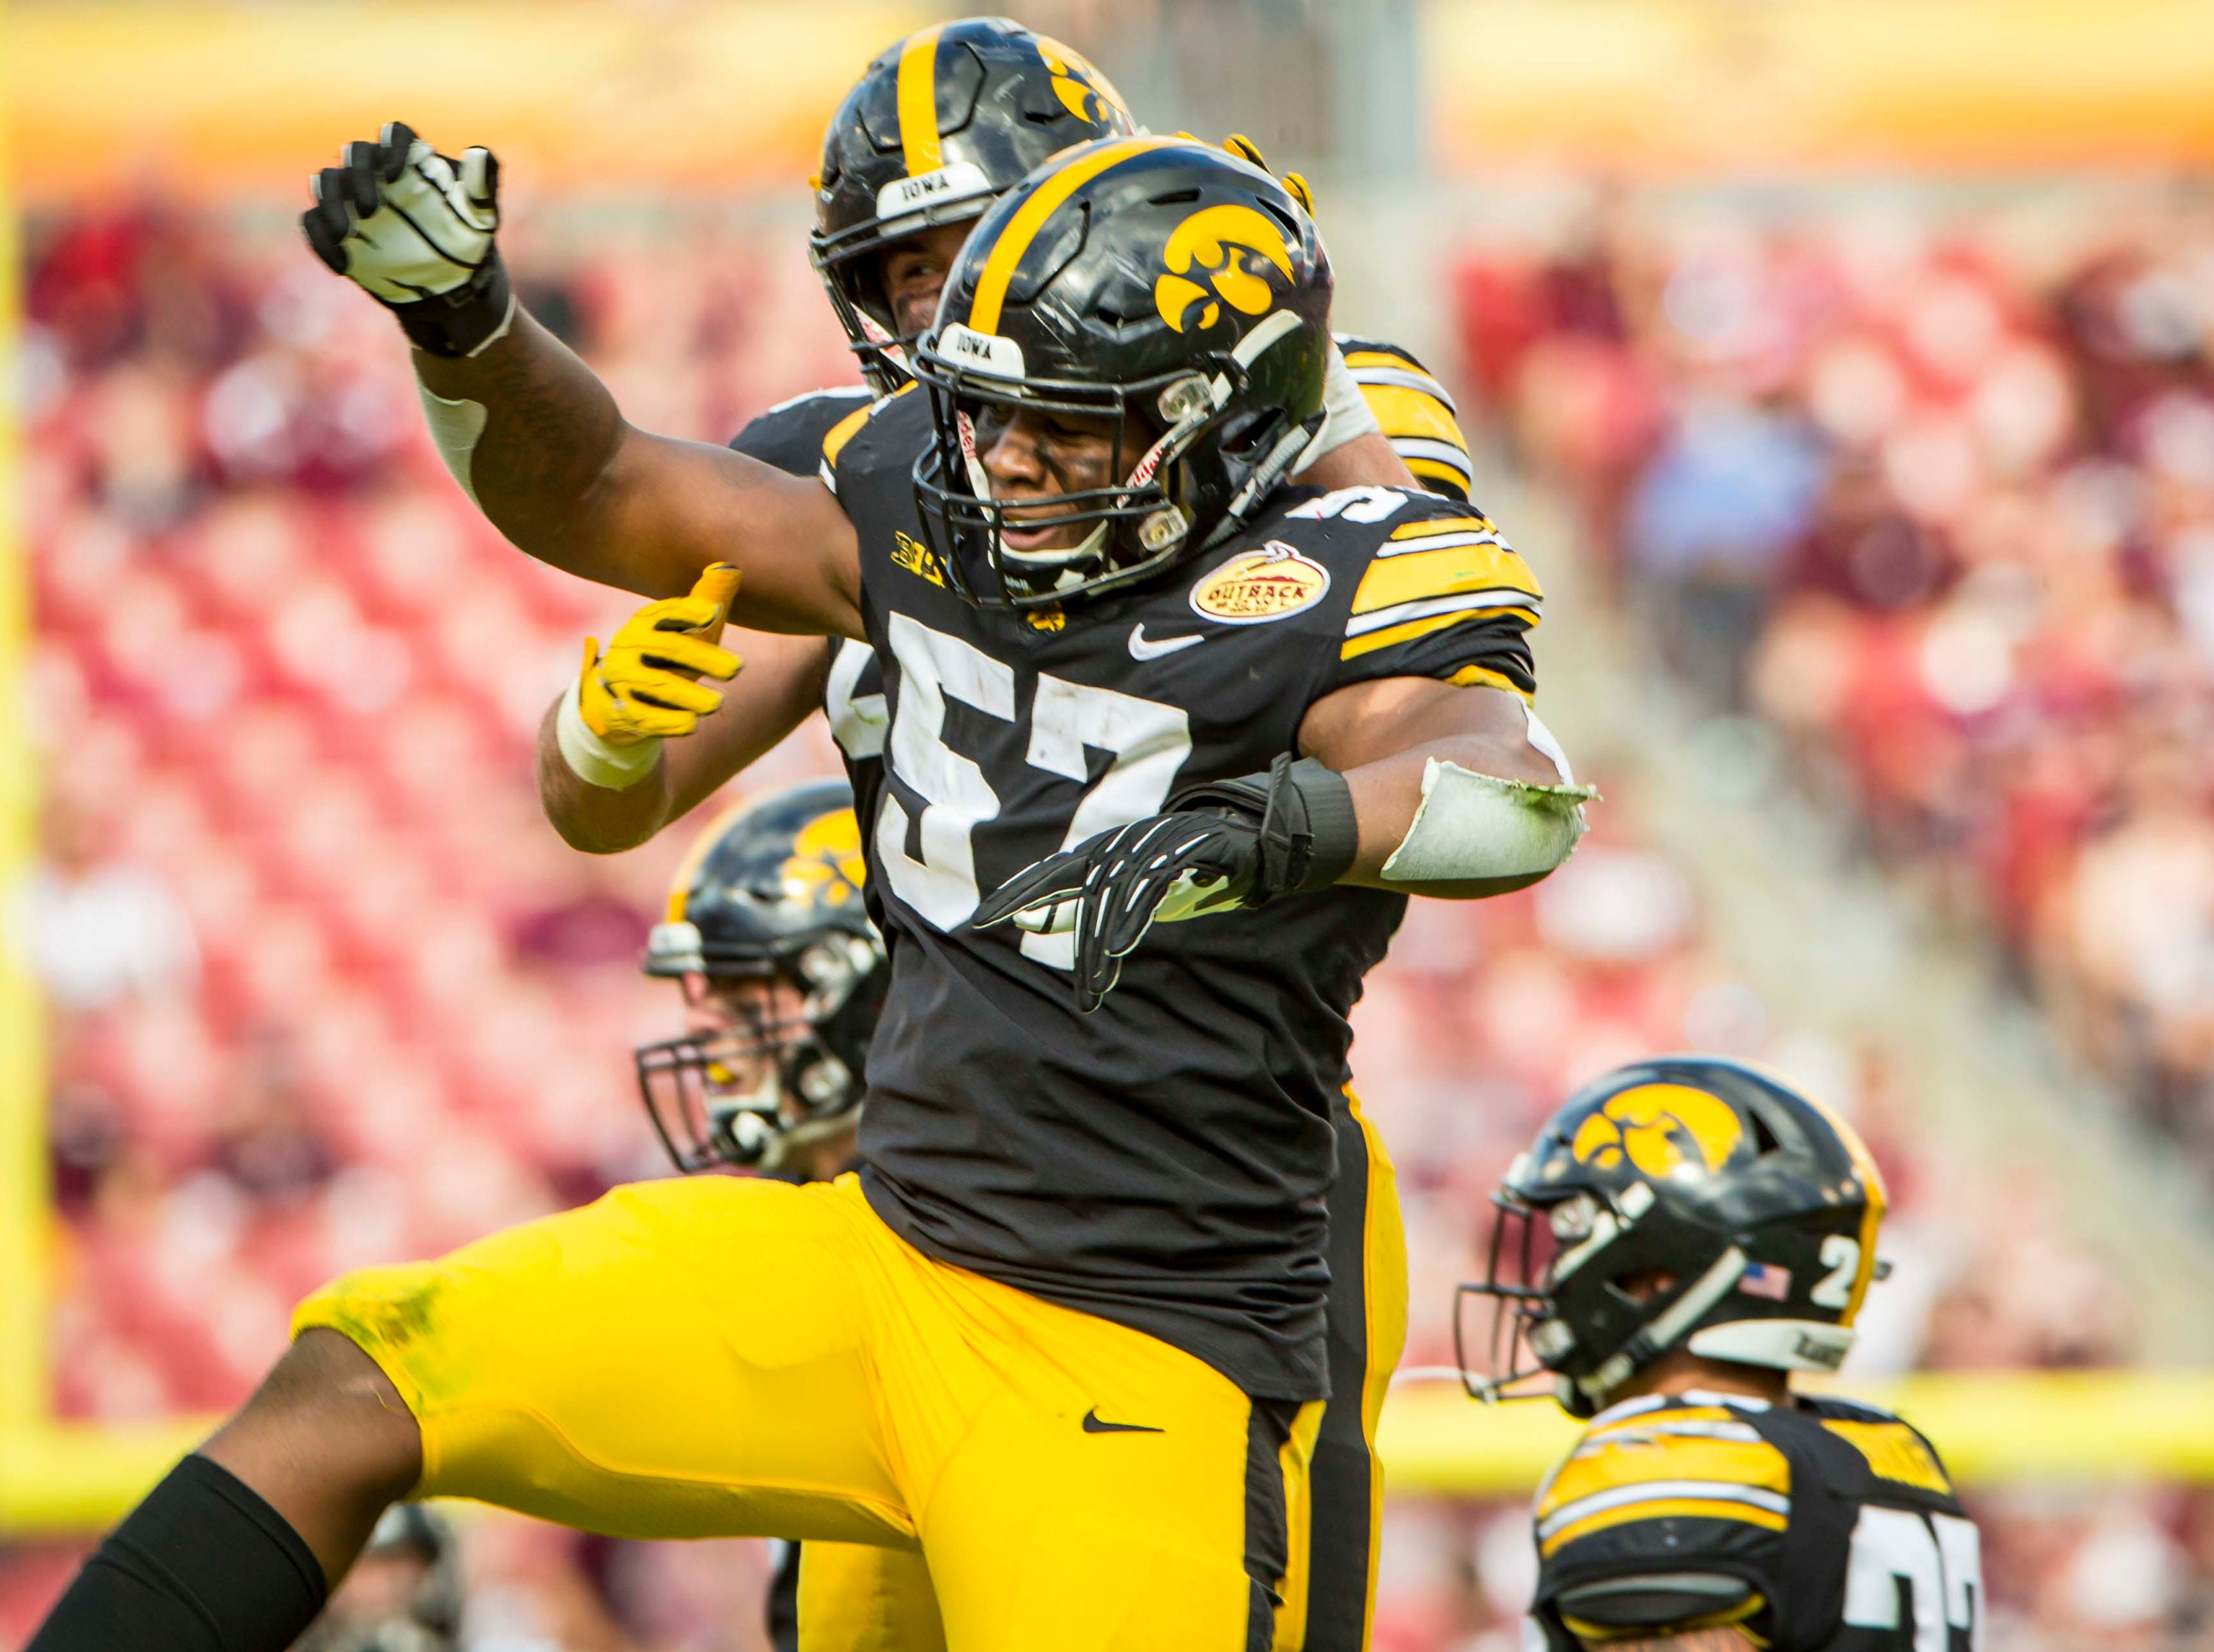 Iowa defensive end Chauncey Golston celebrates an interception in the second half at the Outback Bowl Tues., Jan. 1, 2019, at Raymond James Stadium in Tampa, Florida. Iowa defeated Mississippi State 27-22.